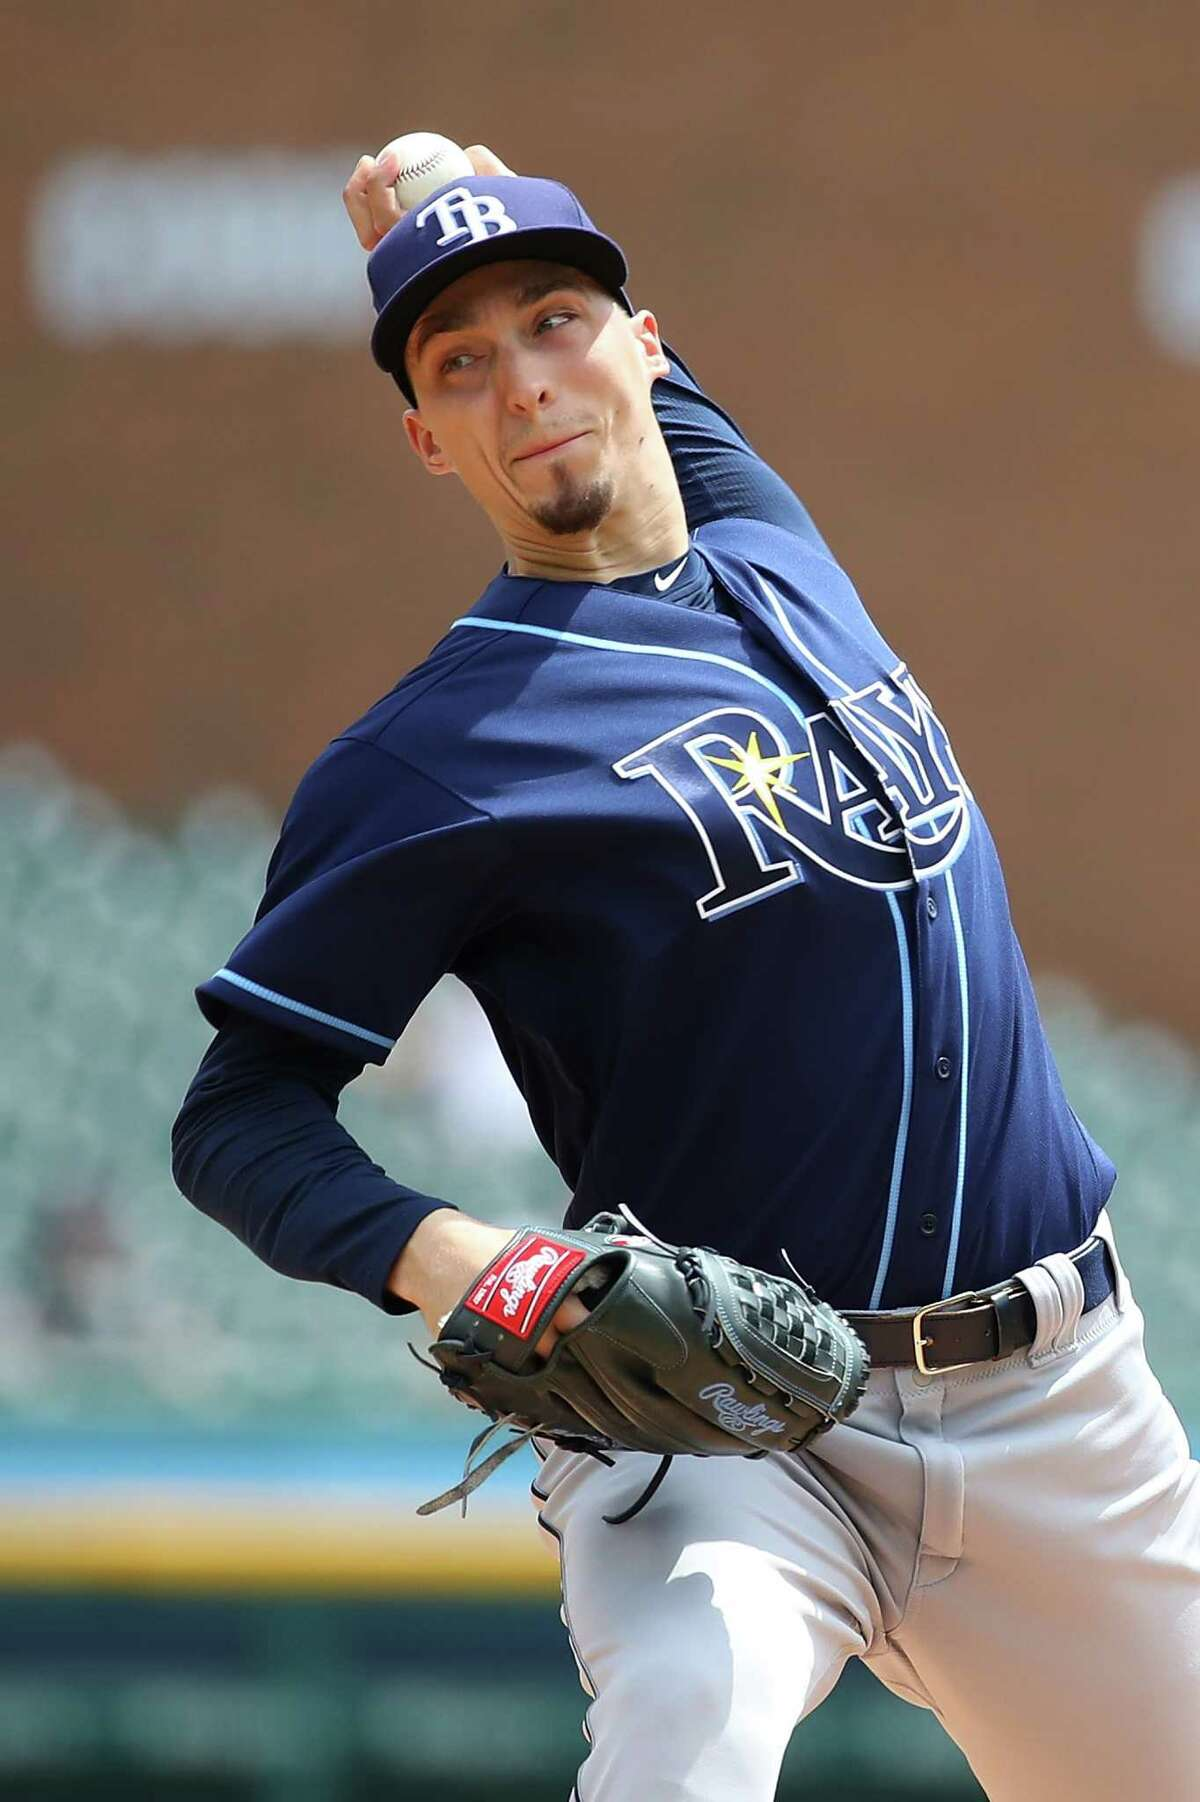 DETROIT, MI - MAY 02: Blake Snell #4 of the Tampa Bay Rays throws a first inning pitch while playing the Detroit Tigers at Comerica Park on May 2, 2018 in Detroit, Michigan. (Photo by Gregory Shamus/Getty Images)